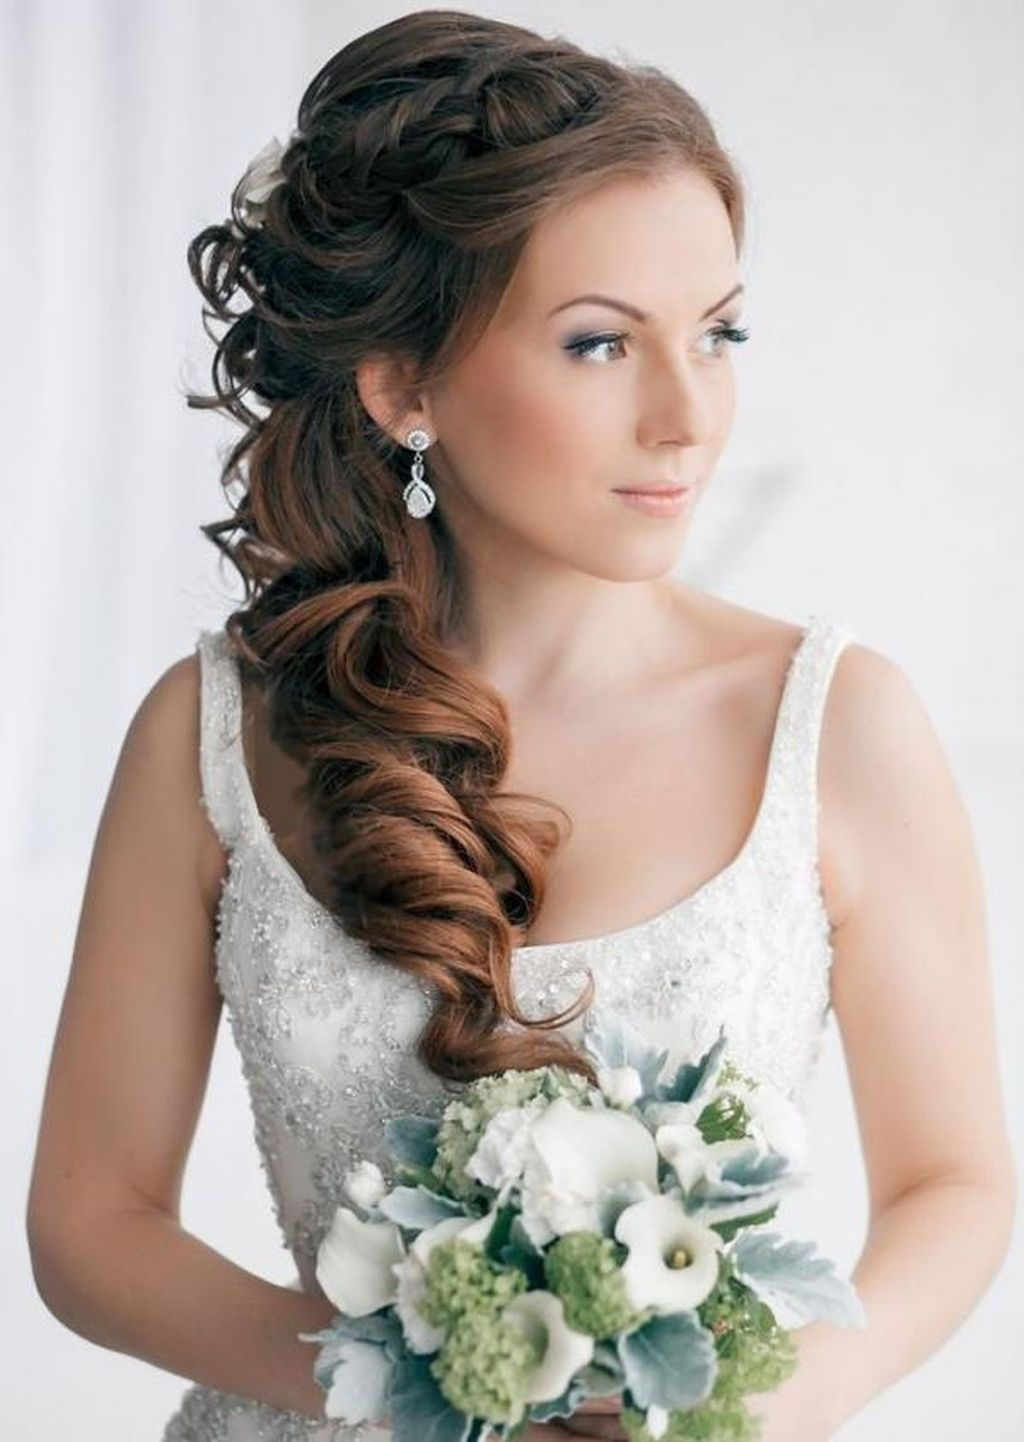 Long Hair Bridal Hairstyles Wedding Hairstyles Updos Pulled Back Throughout 2018 Pulled Back Wedding Hairstyles (View 5 of 15)